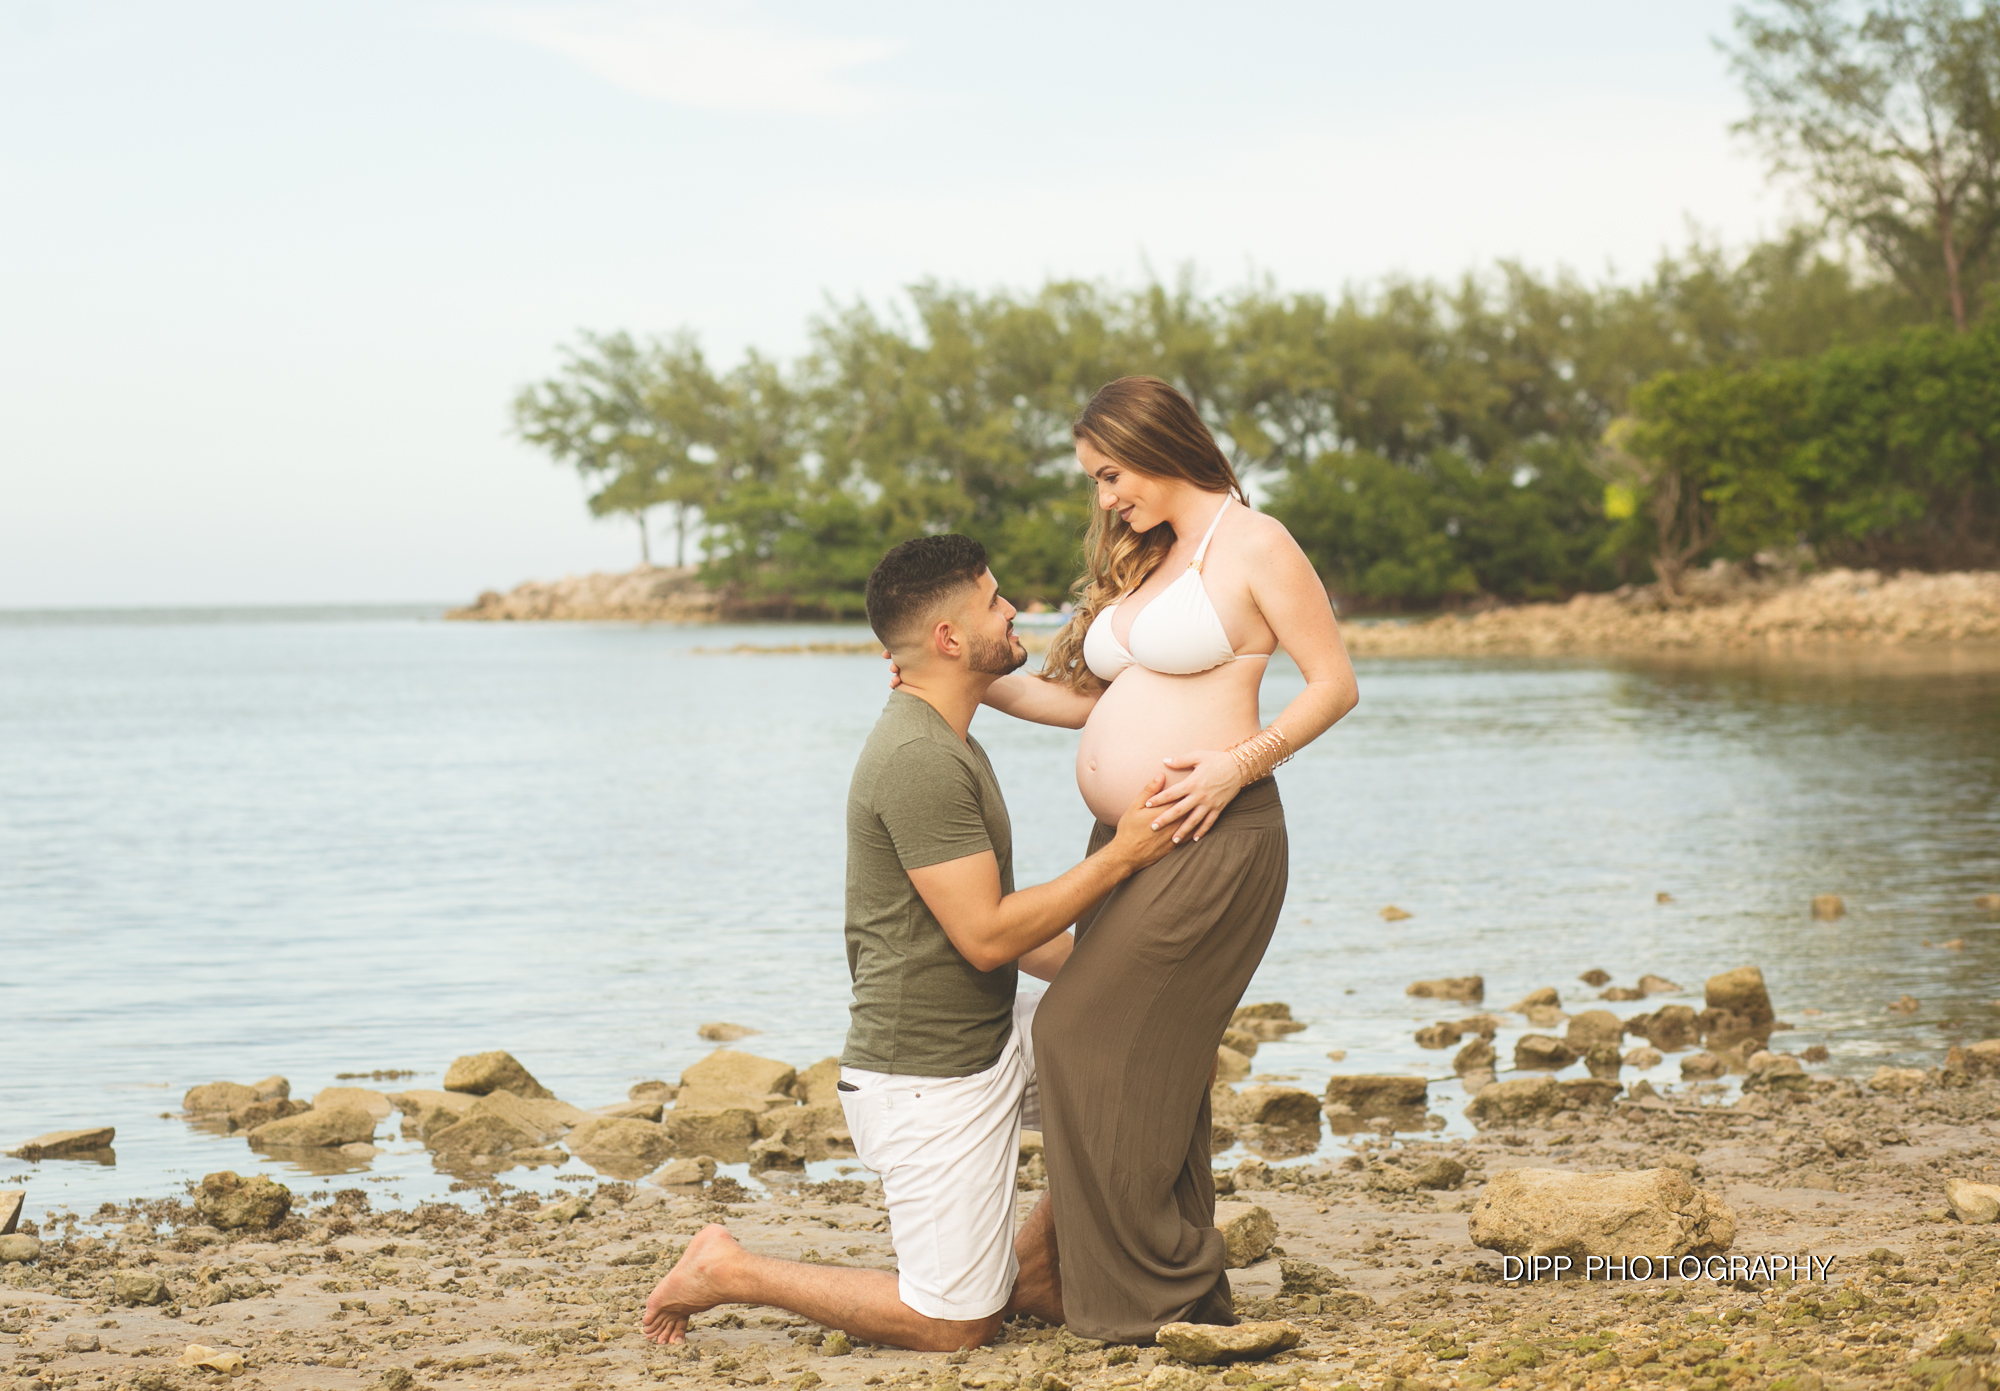 Dipp_2016 Lauren Rego MATERNITY-270-Edit